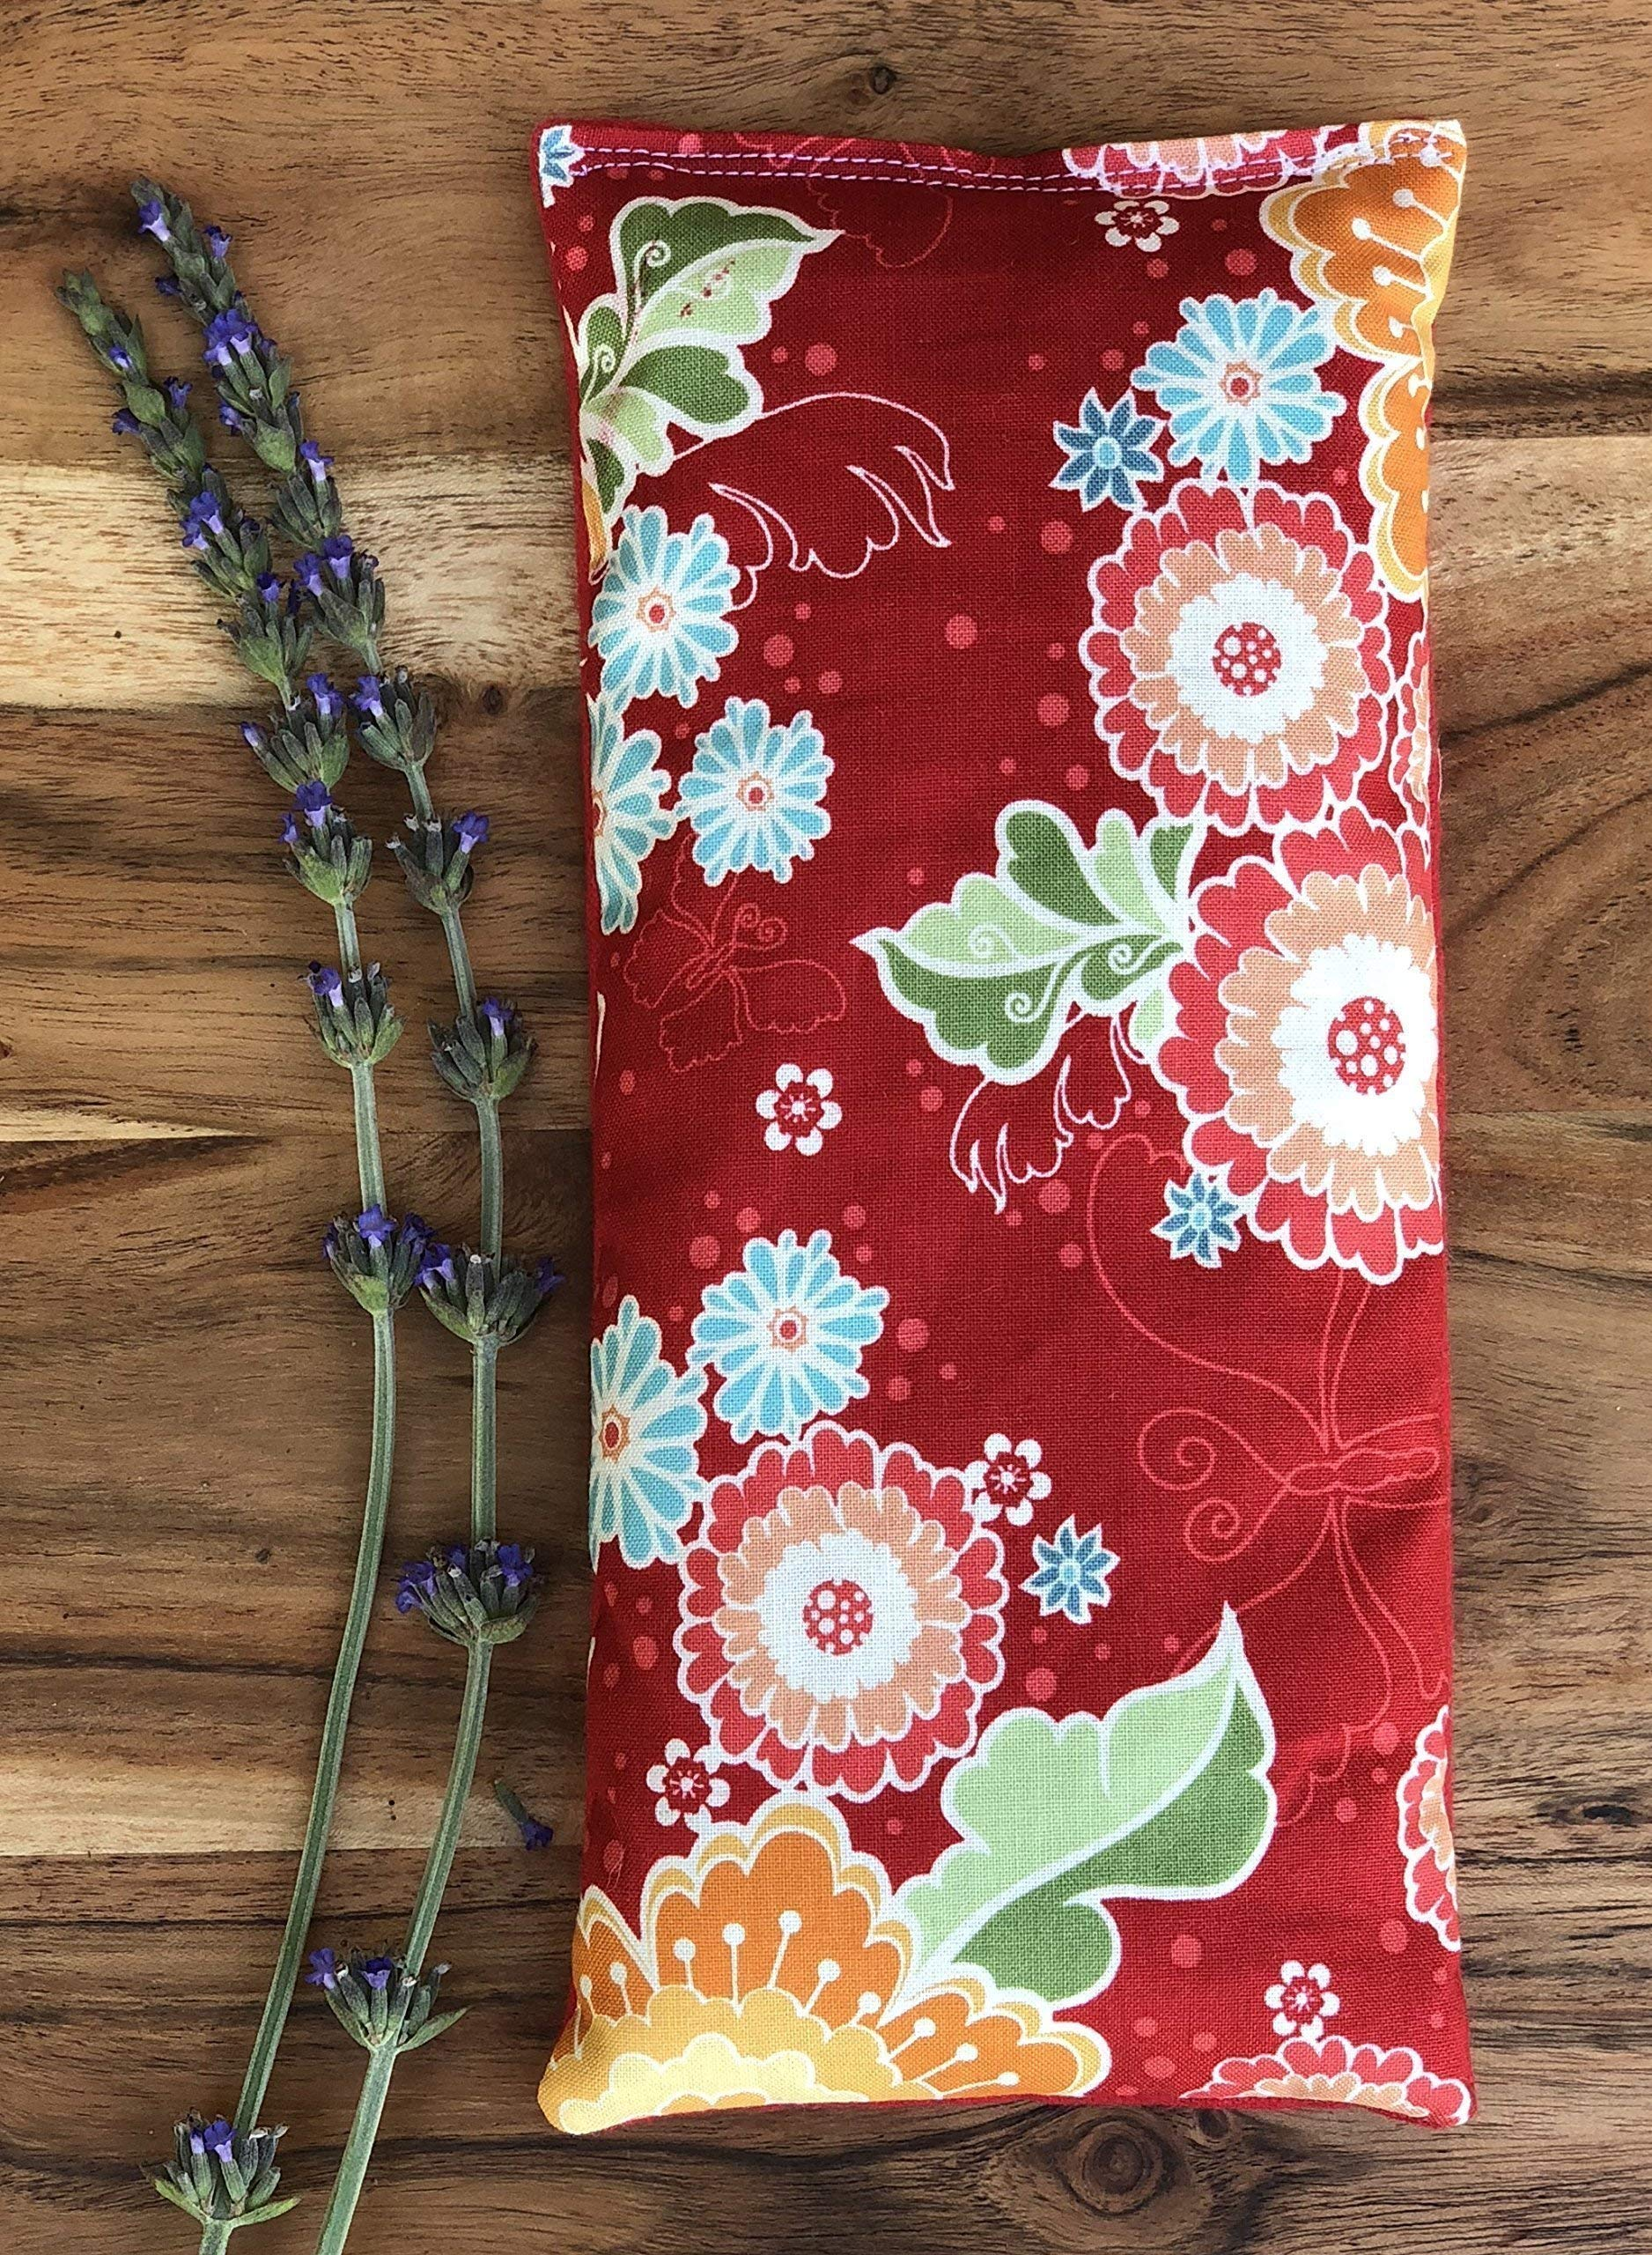 Microwave Heating Pad with Flax Seed and Dried Lavender